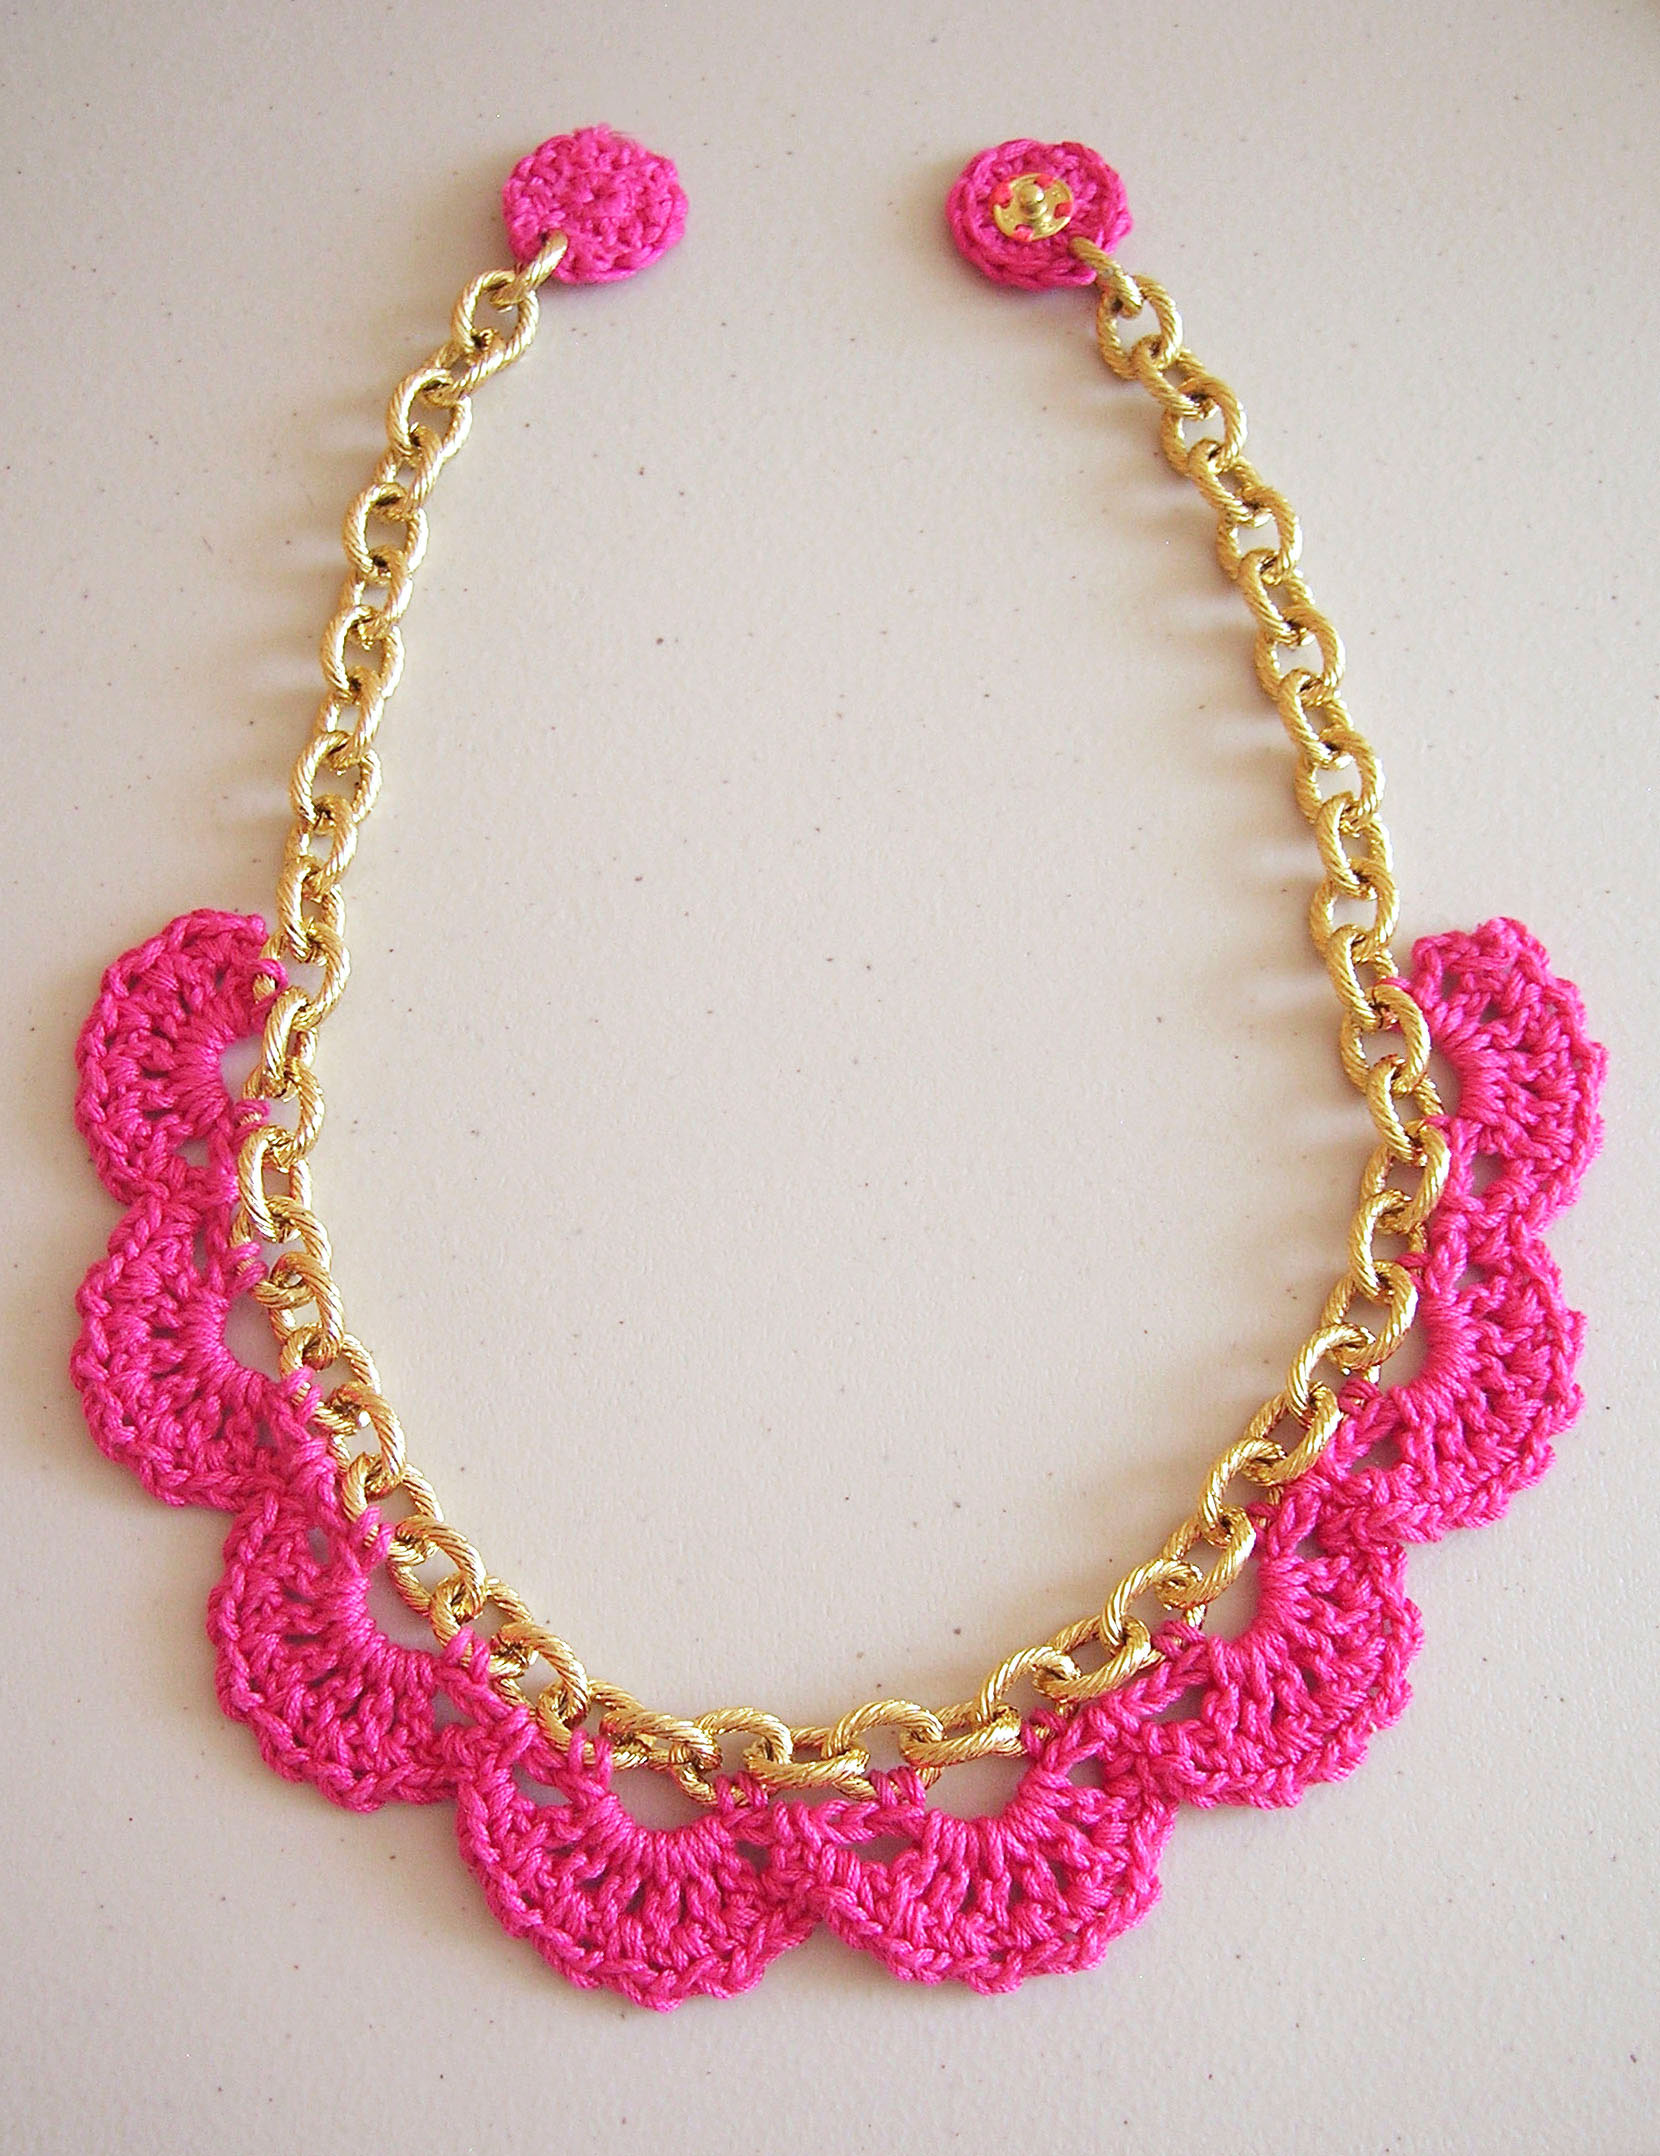 Crochet in a chain/ Crochet en una cadena